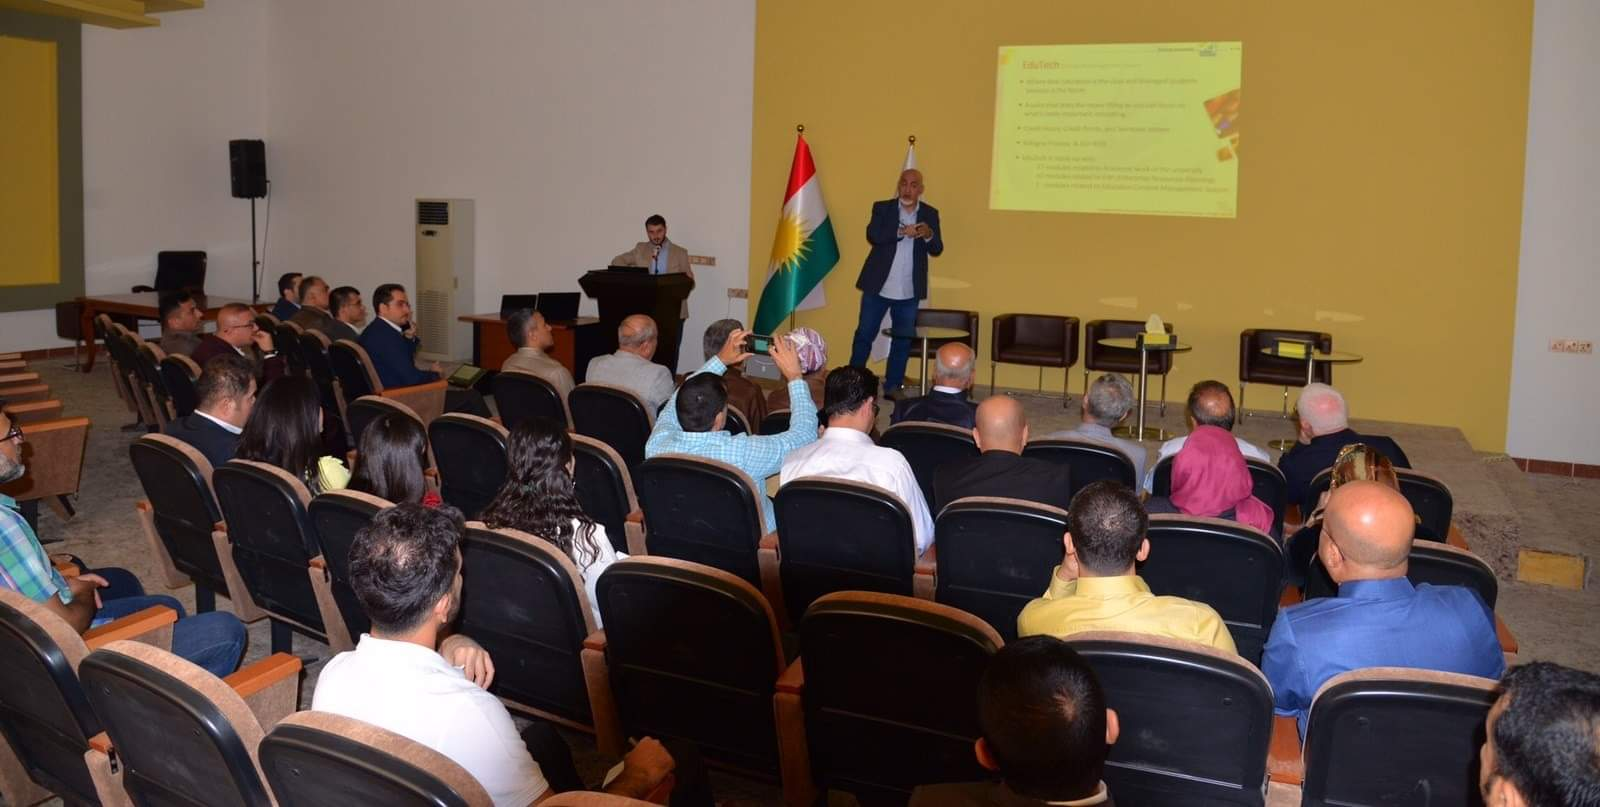 In Cooperation with Witty Technology And Automota4 Group, EPU Has Managed A Workshop About Education Management System